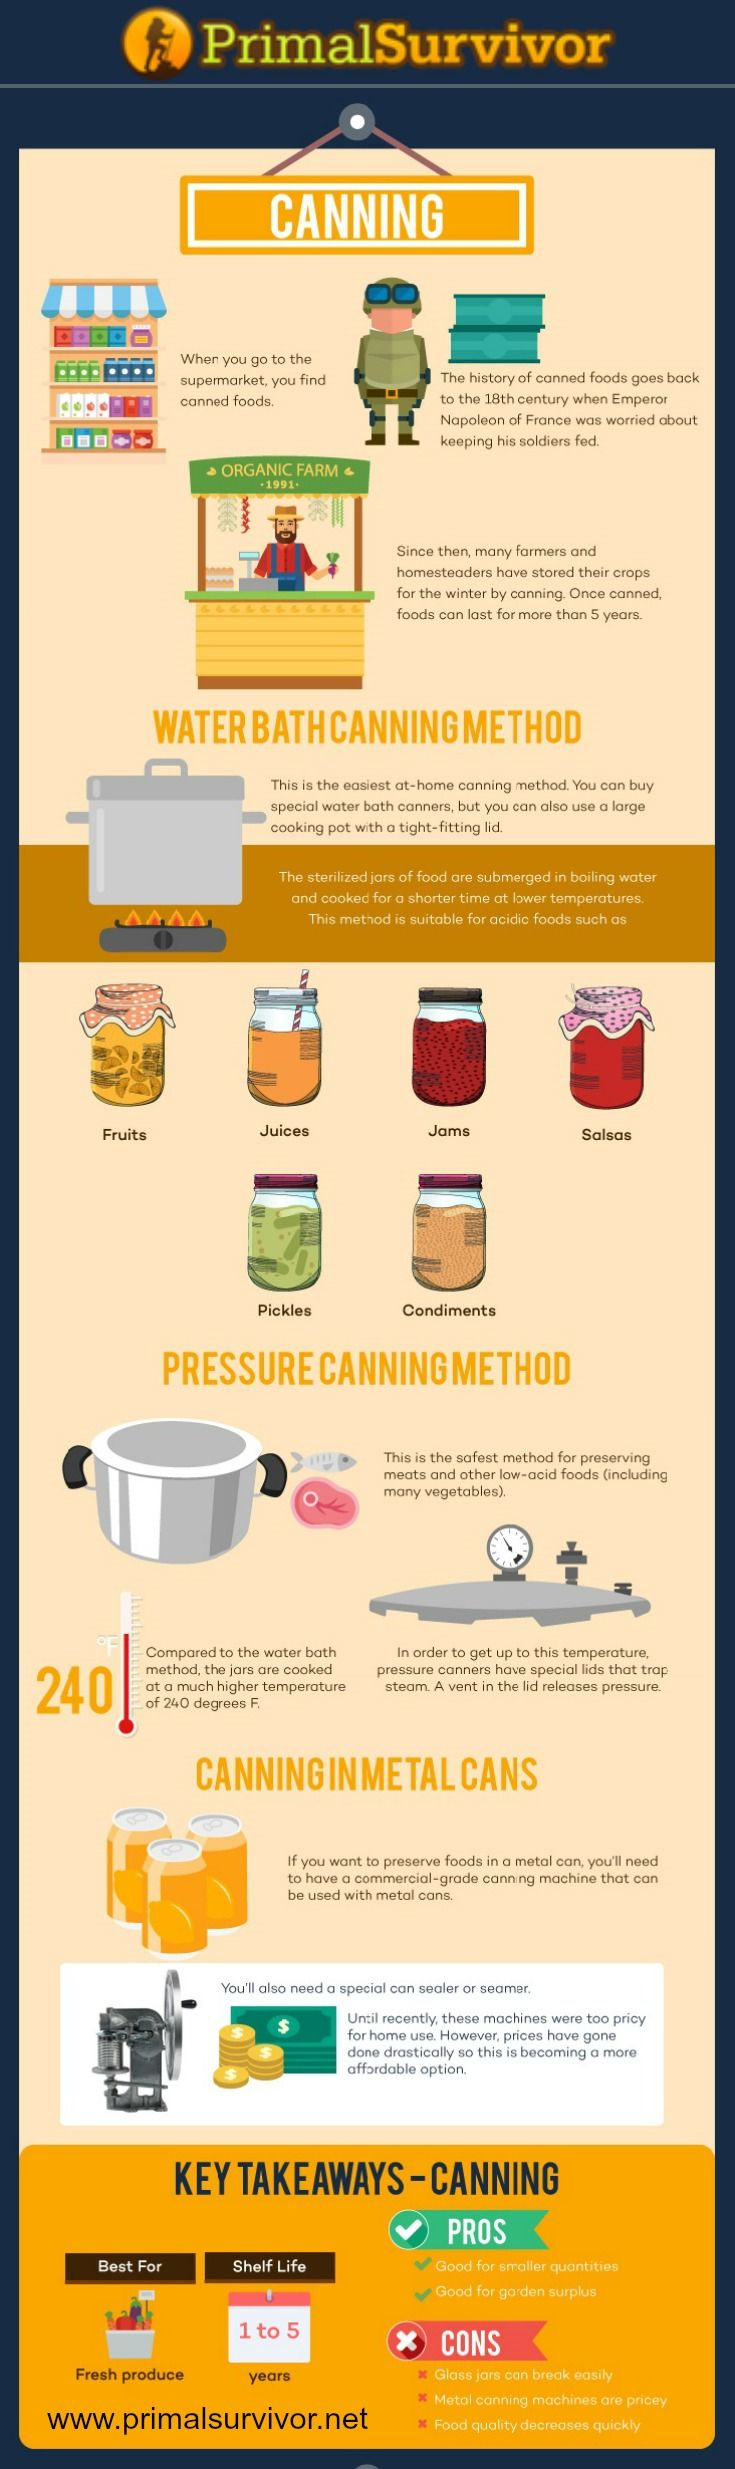 The history of canned foods goes back to the 18th century when Emperor Napoleon of France was worried about keeping his soldiers fed. Since then, many farmers and homesteaders have stored their crops for the winter by canning. Once canned, foods can last for more than 5 years.There are several methods of canning. Water Bath Canning, Pressure Canning, Canning Metal Cans .